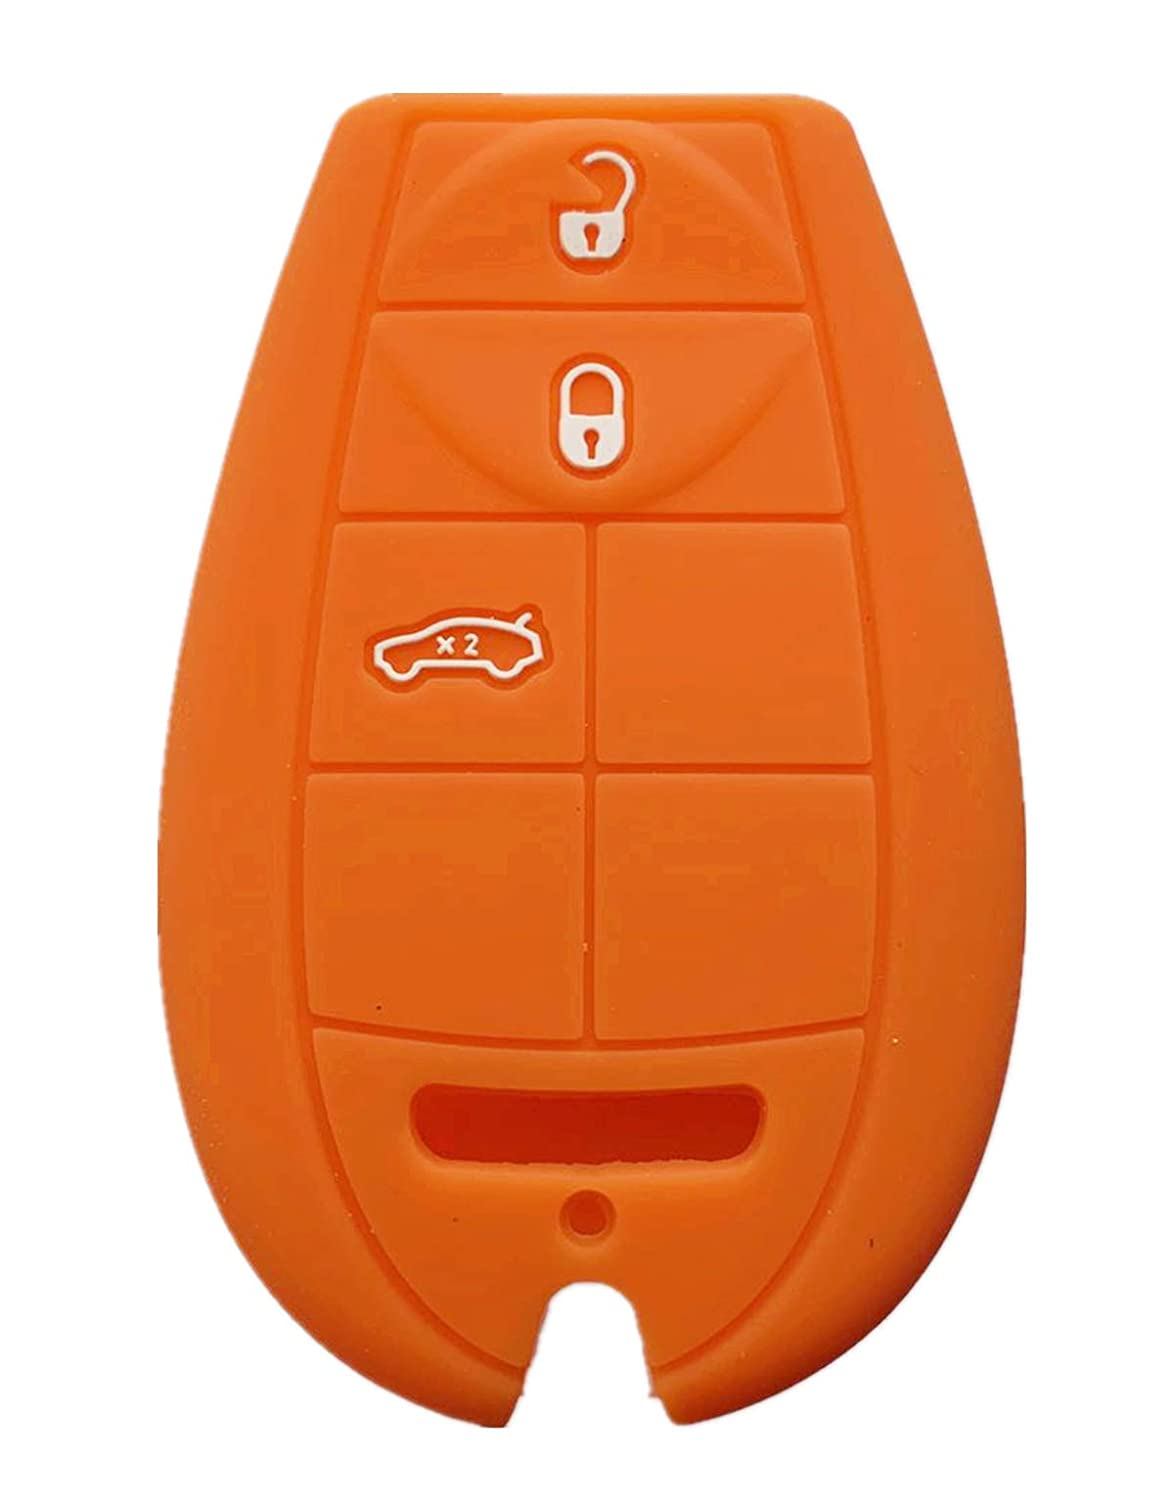 orange Rpkey Silicone Keyless Entry Remote Control Key Fob Cover Case protector For Chrysler 300 Dodge Challenger Charger Journey Magnum M3N5WY783X IYZ-C01C